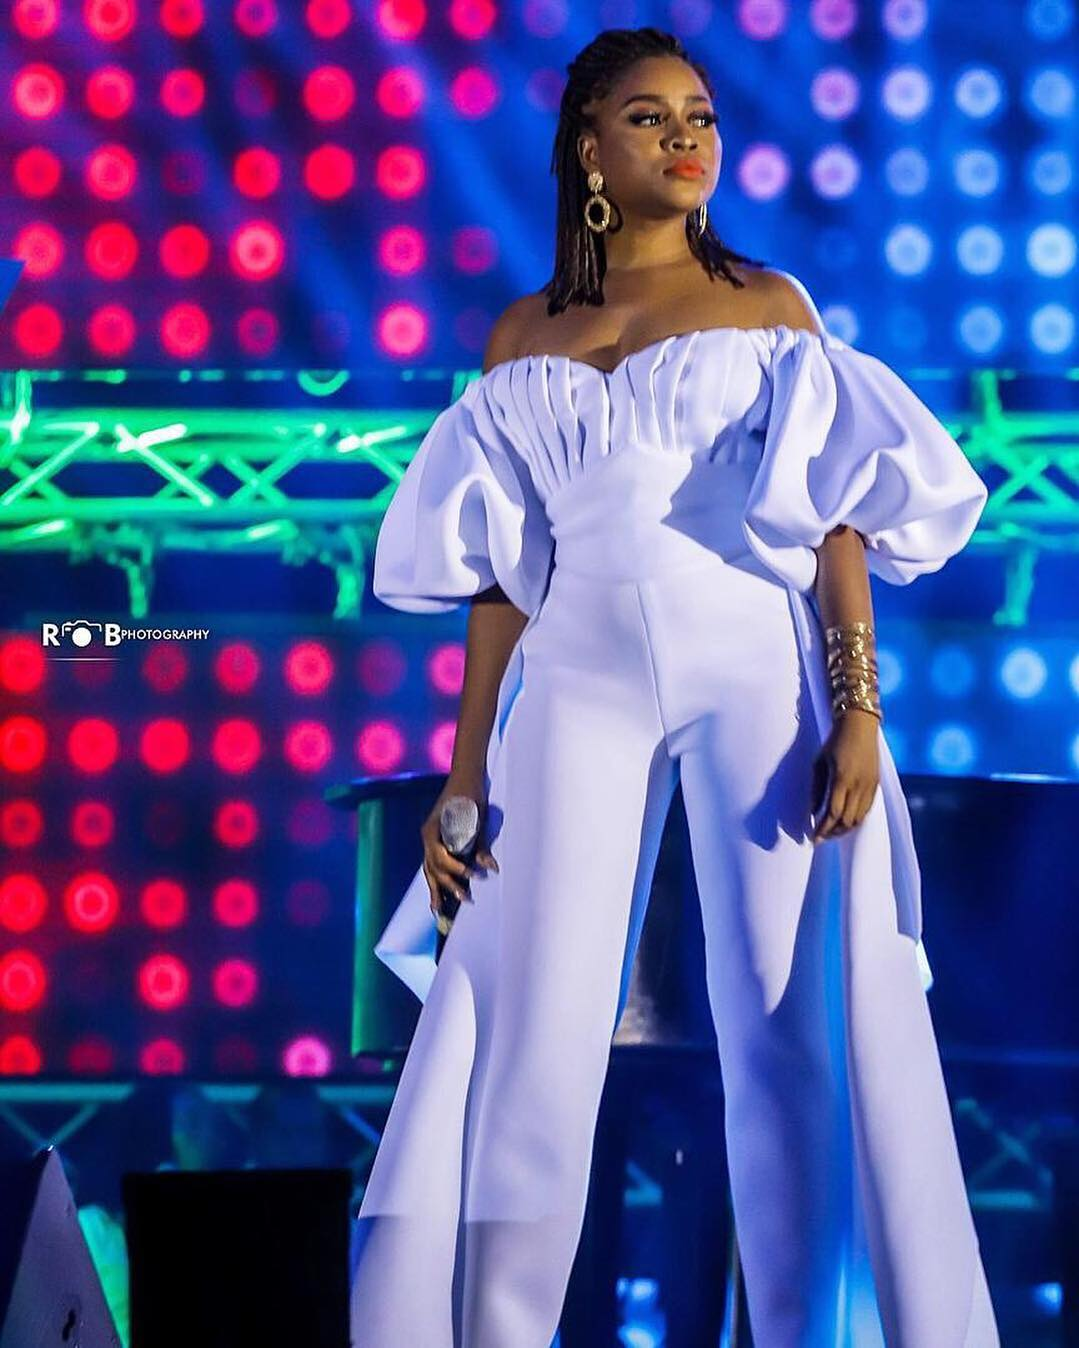 I went to the 3Music Awards to have fun and wasn't expecting any award – Adina